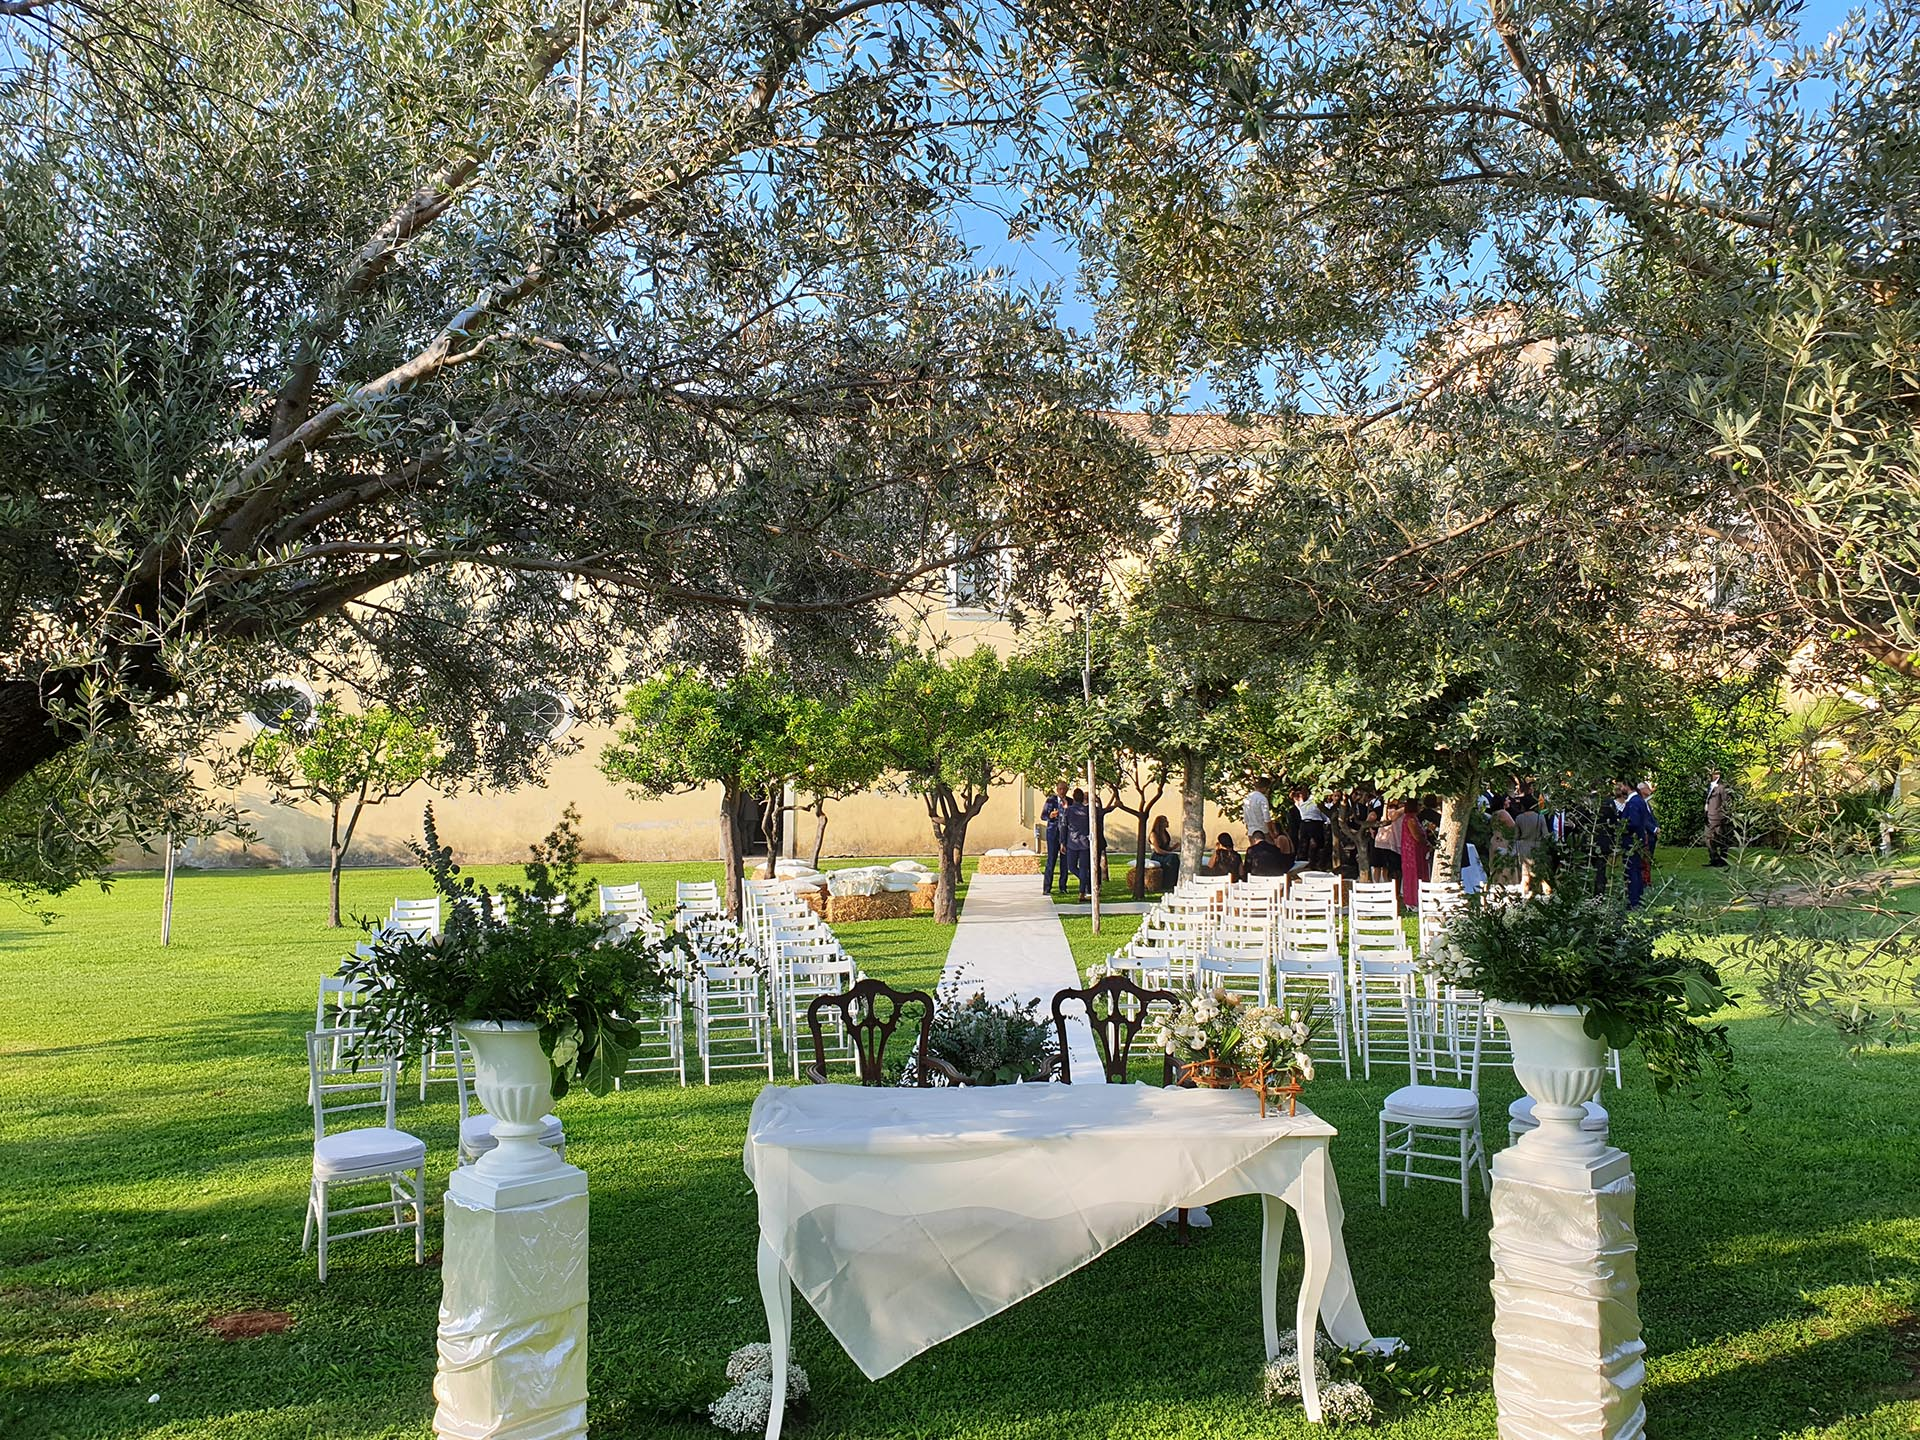 Matrimonio In Masseria: Il Matrimonio Boho Chic E Le Tendenze Del 2021